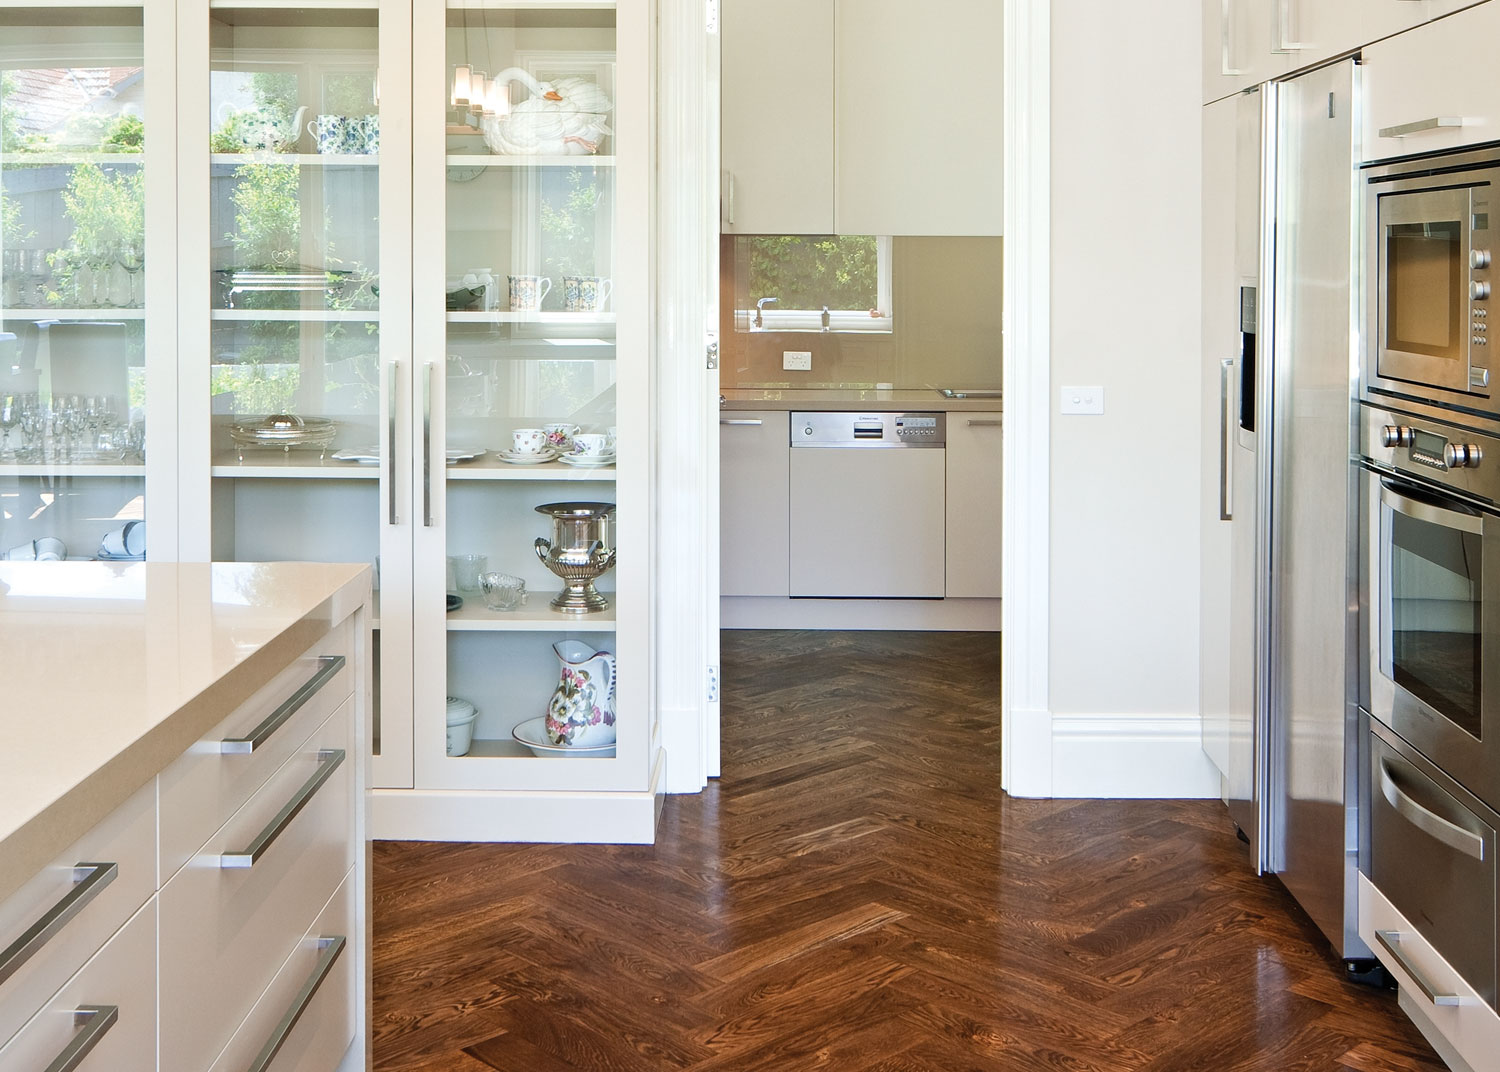 Kitchens Cabinetry Modern Kew